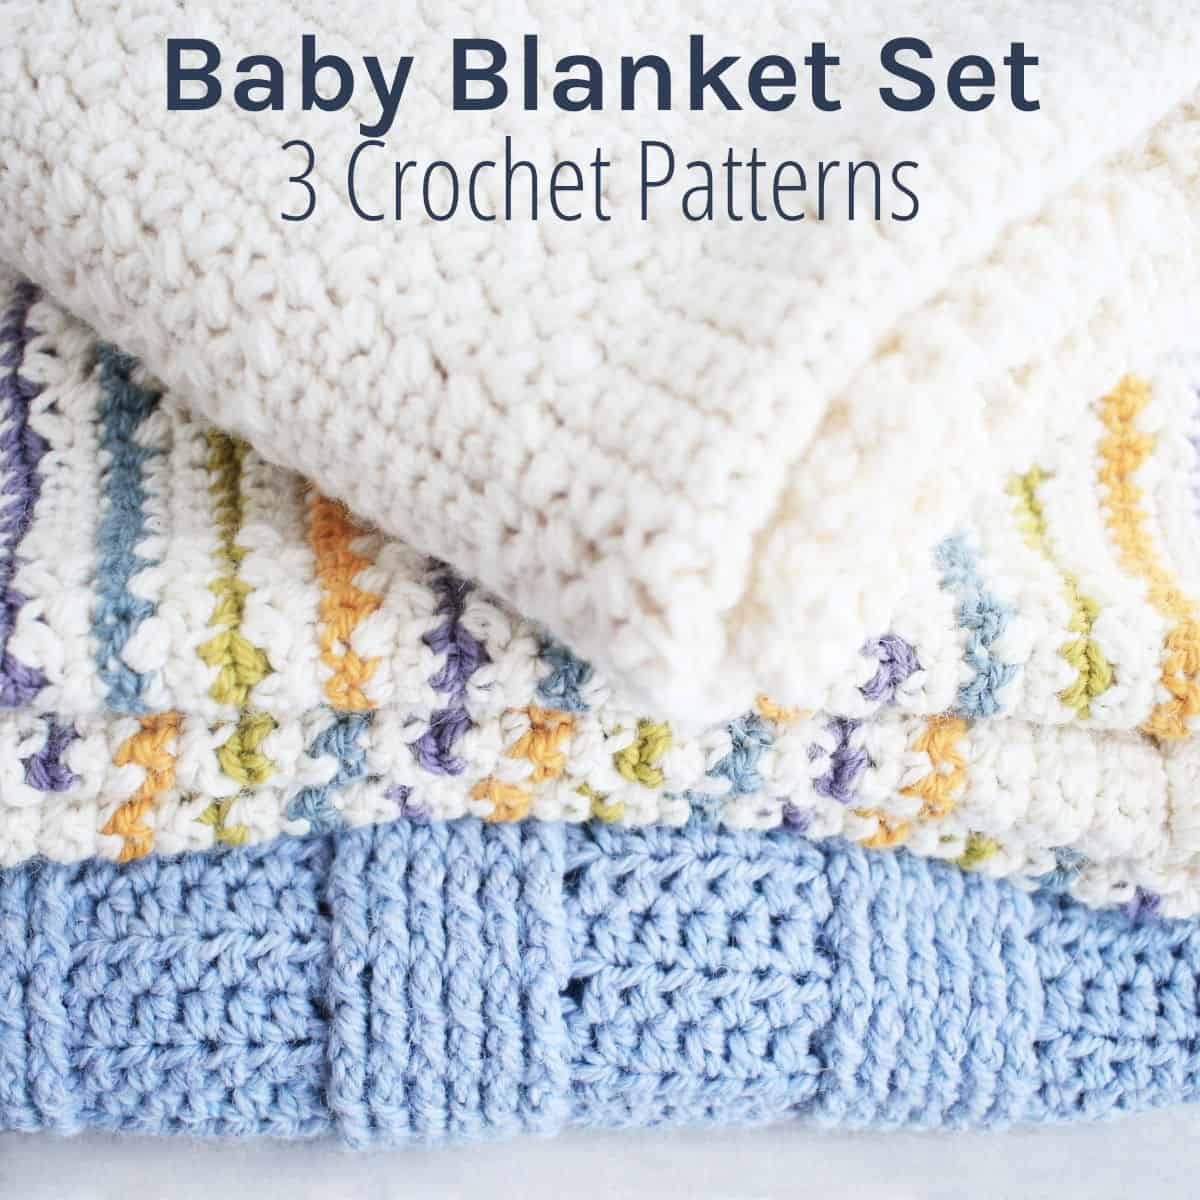 3 Crochet Baby Blanket Patterns Set